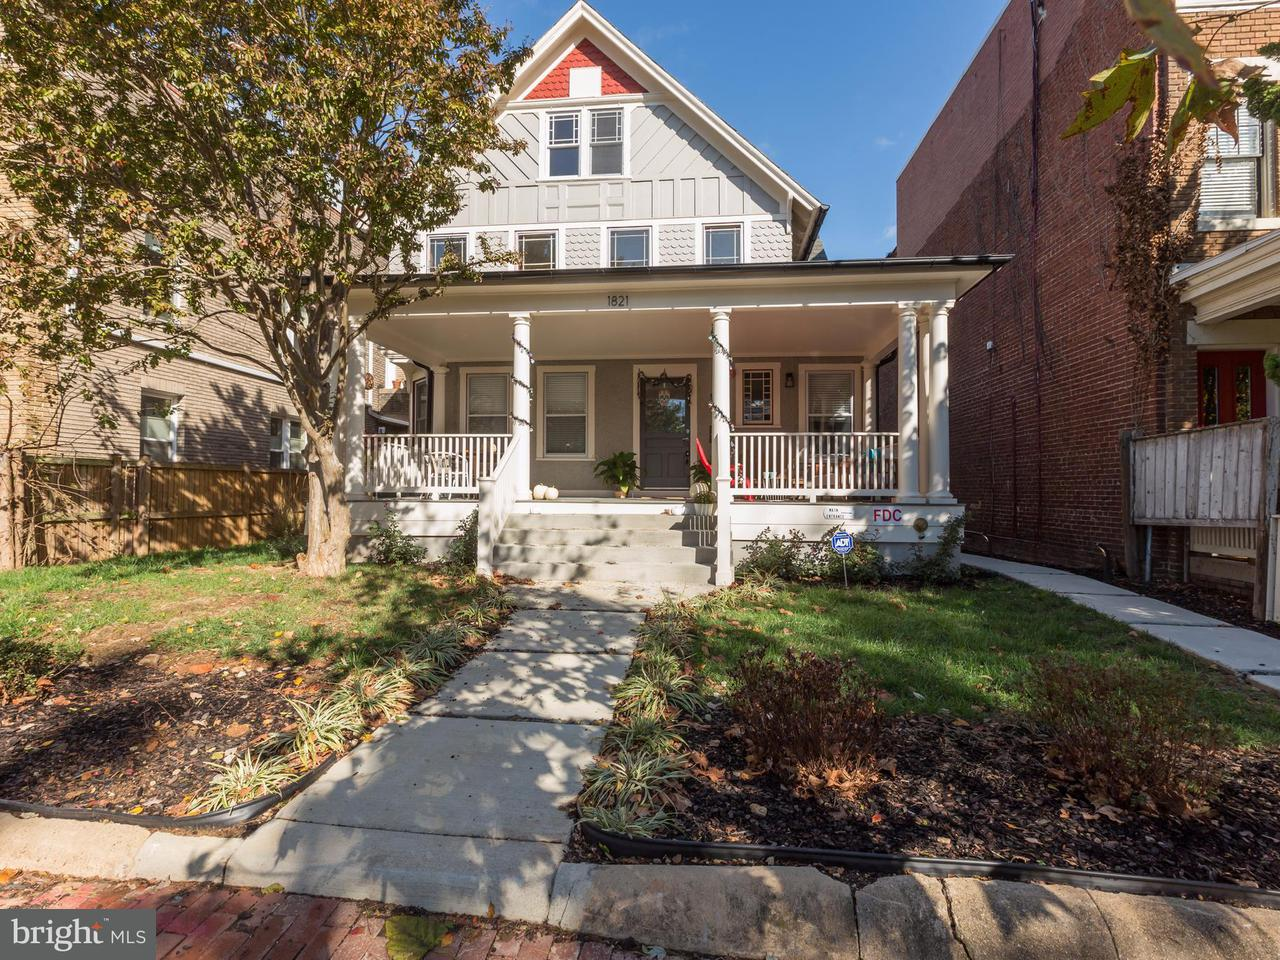 Townhouse for Sale at 1821 NEWTON ST NW #FIVE 1821 NEWTON ST NW #FIVE Washington, District Of Columbia 20010 United States